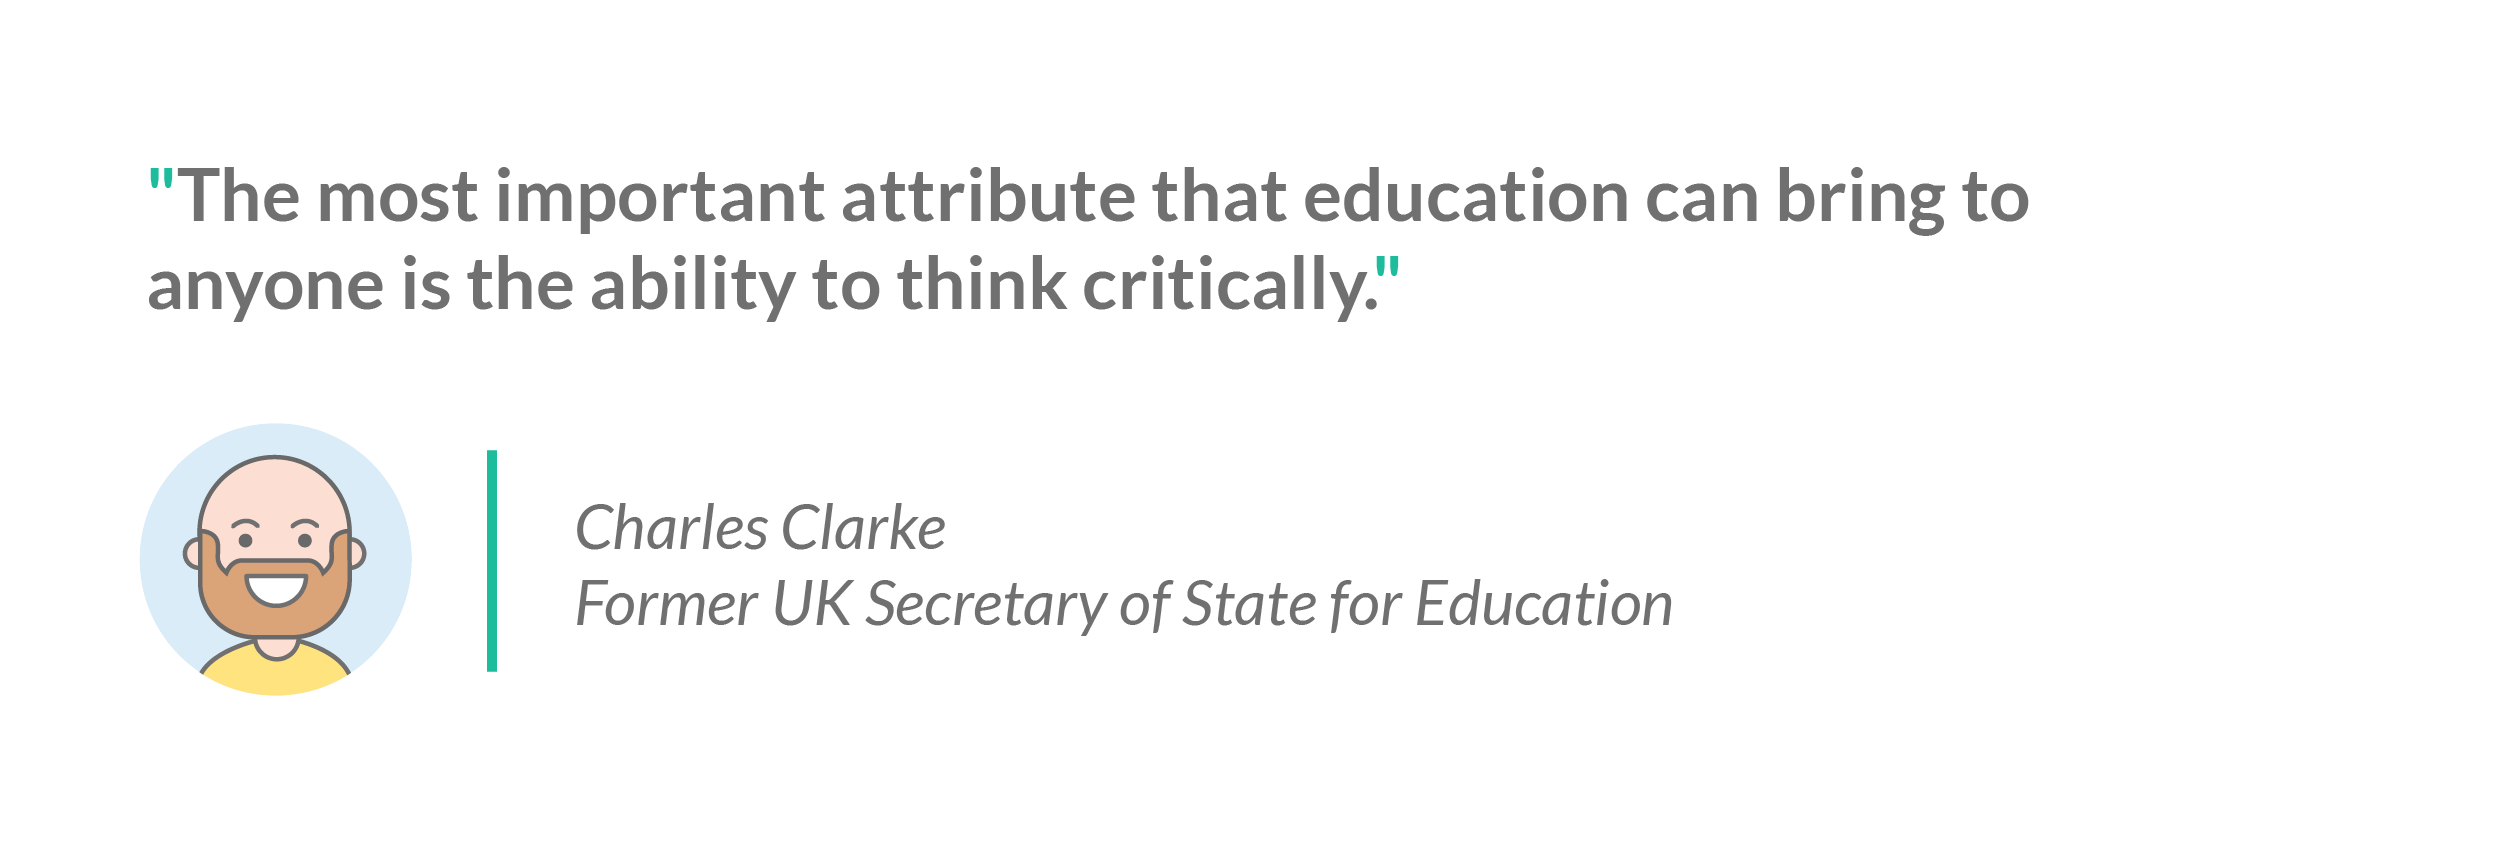 "A quote from Charles Clarke, former UK secretary of state for education: ""The most important attribute that education can bring to anyone is the ability to think critically"""